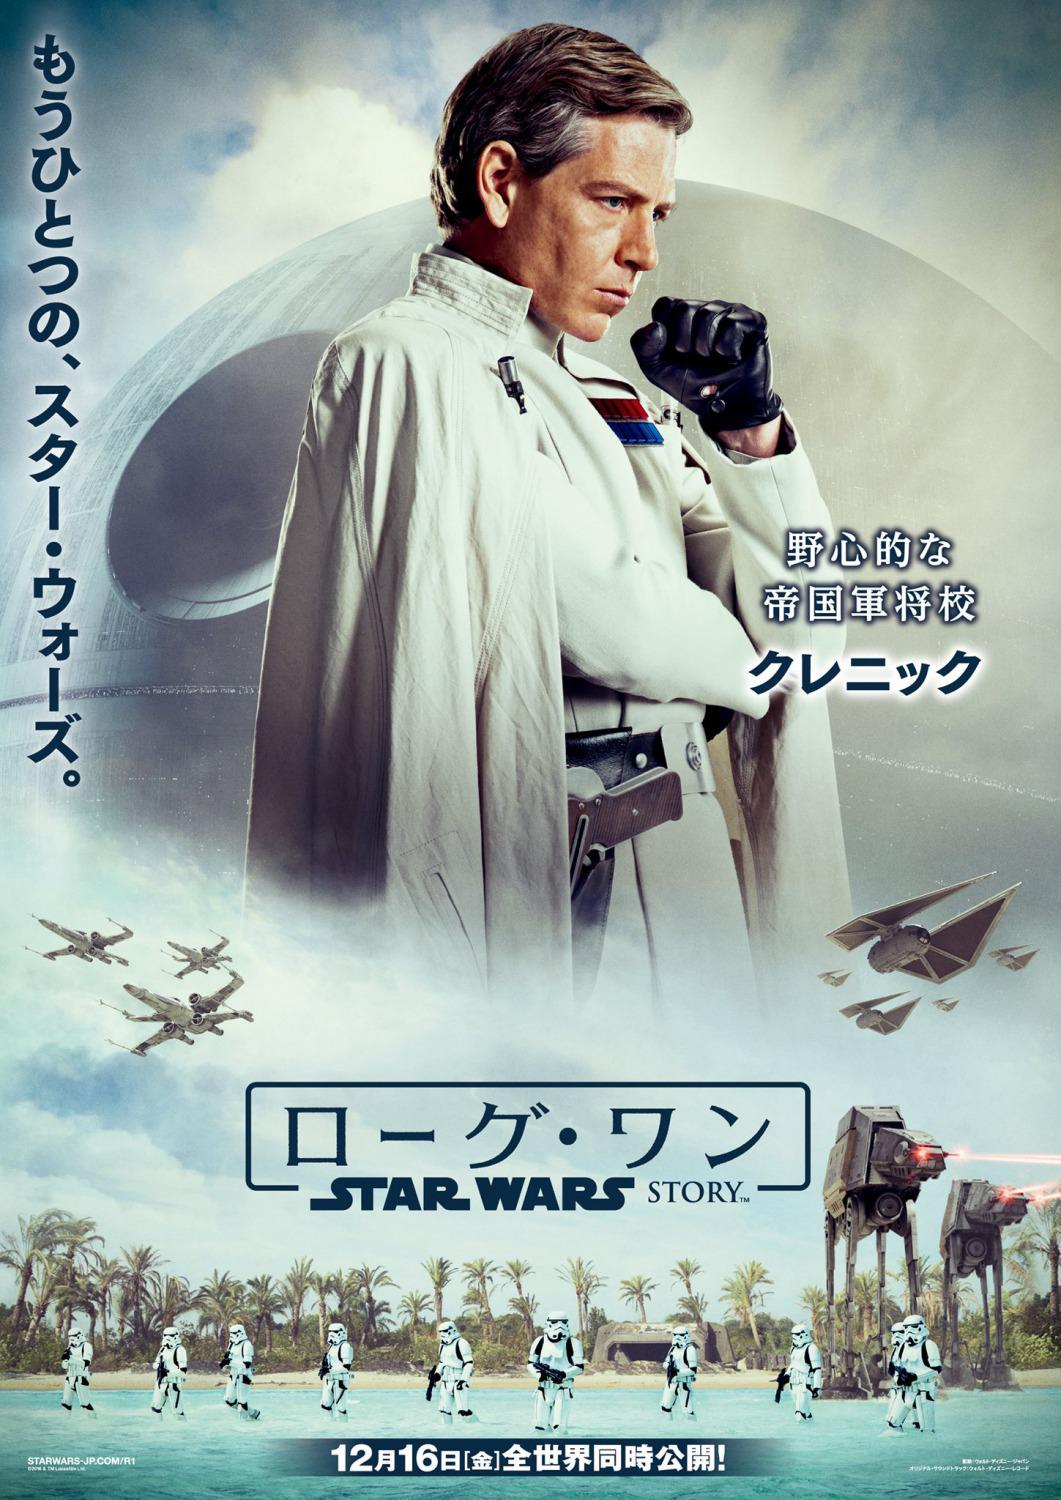 Star Wars - Rogue One a Star Wars story - Ben Mendelsohn - Orson Krennic